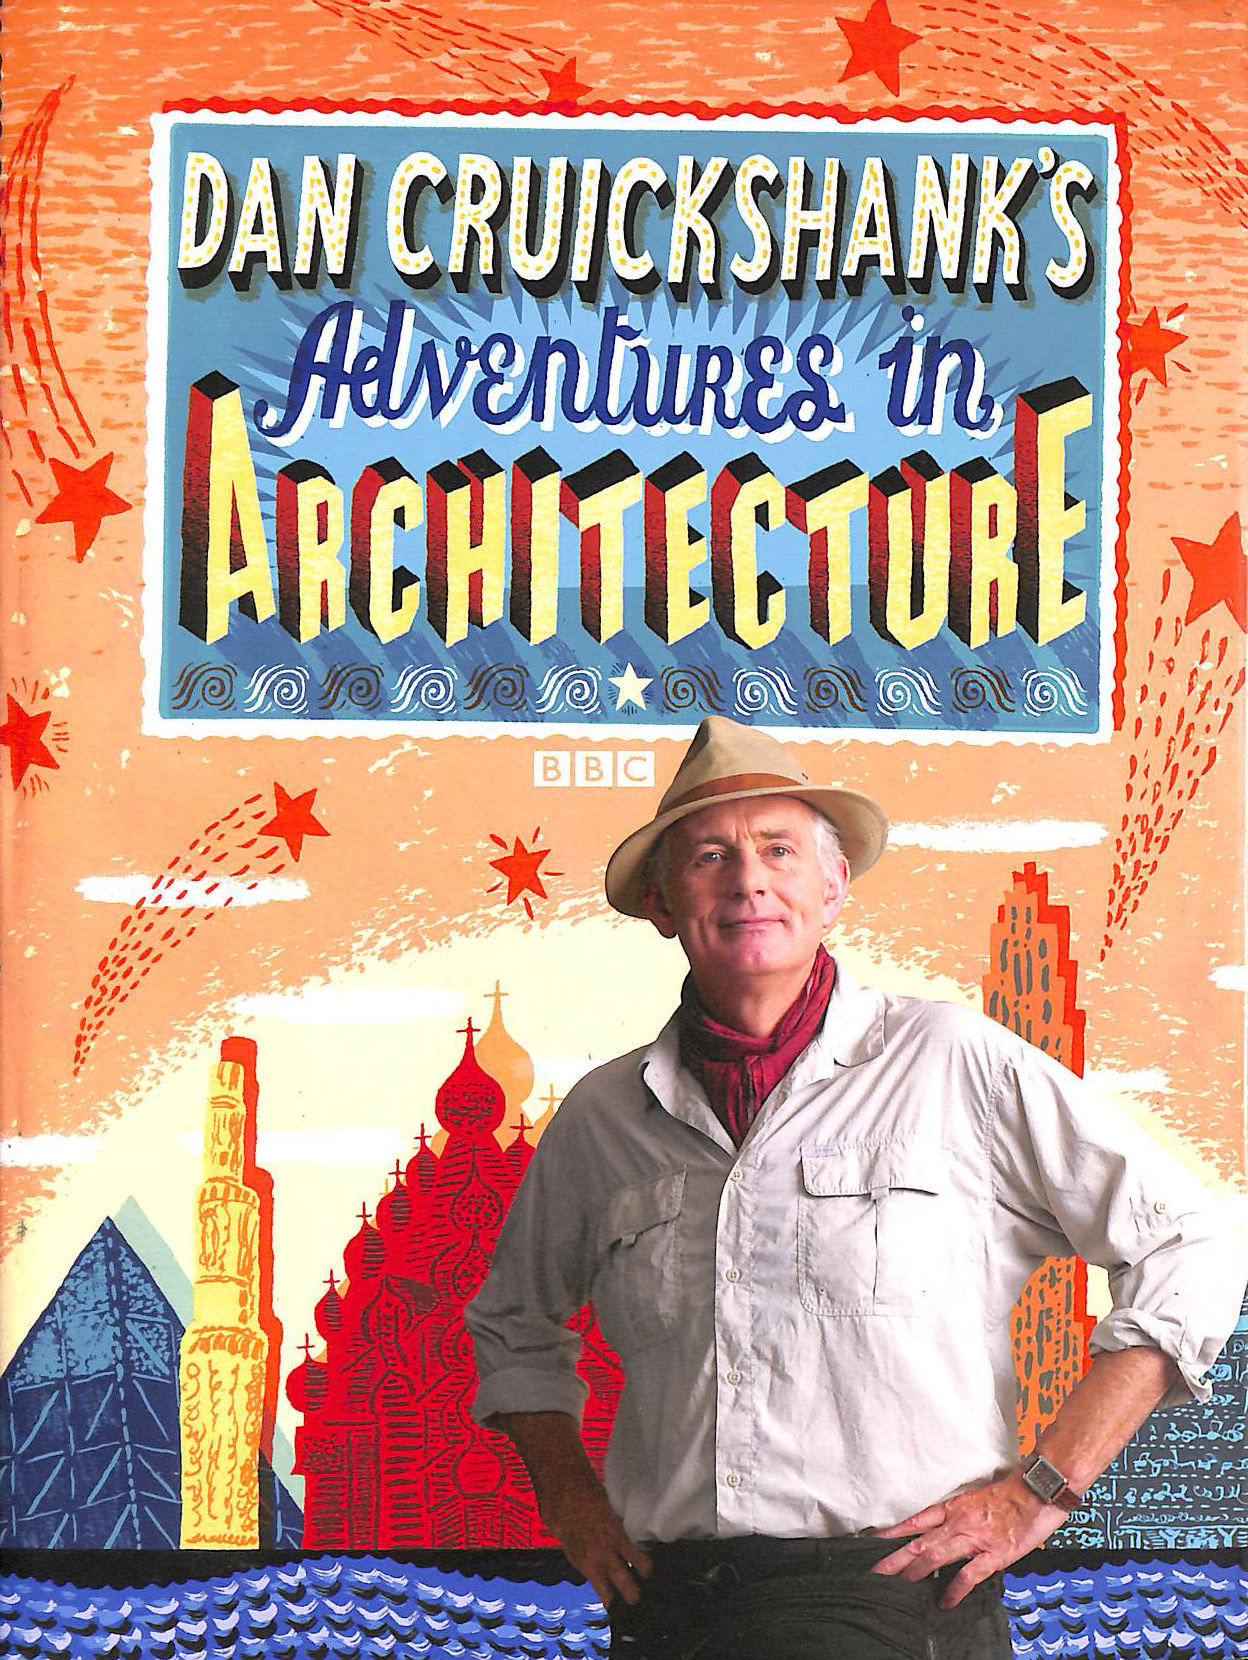 Dan Cruikshank's Adventures in Architecture, Dan Cruikshank